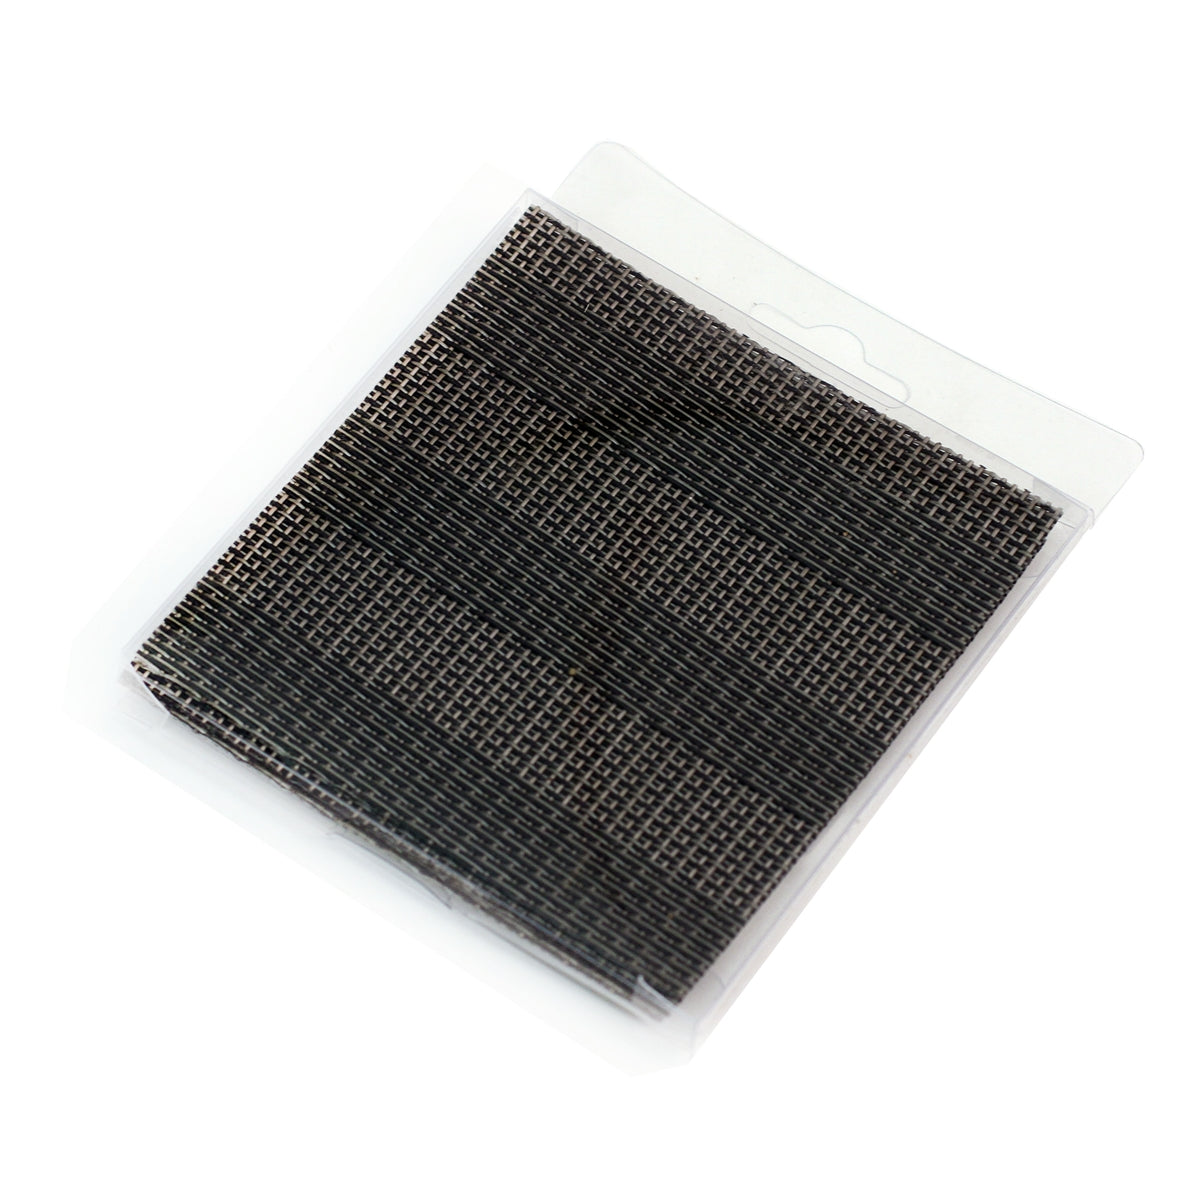 5 Set Square Black Coaster